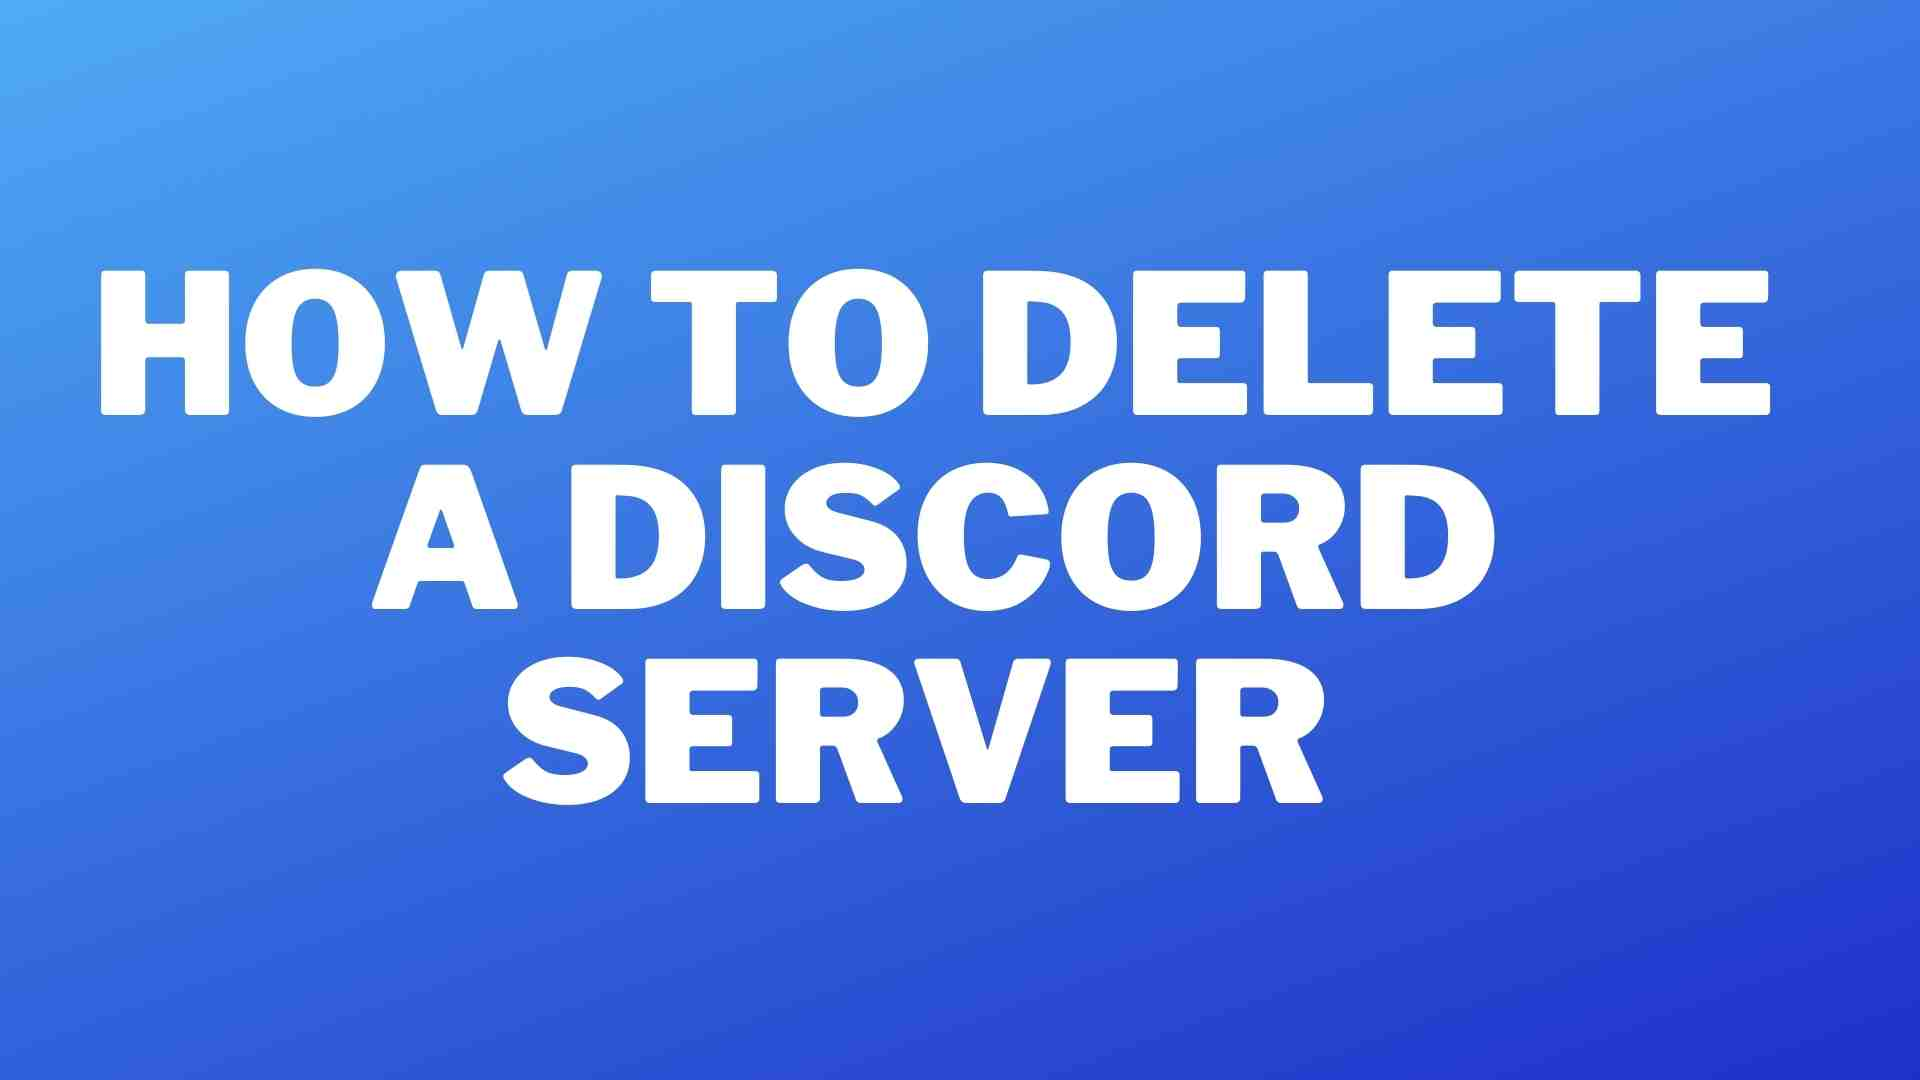 Delete a Discord Server in 3 Simple Steps